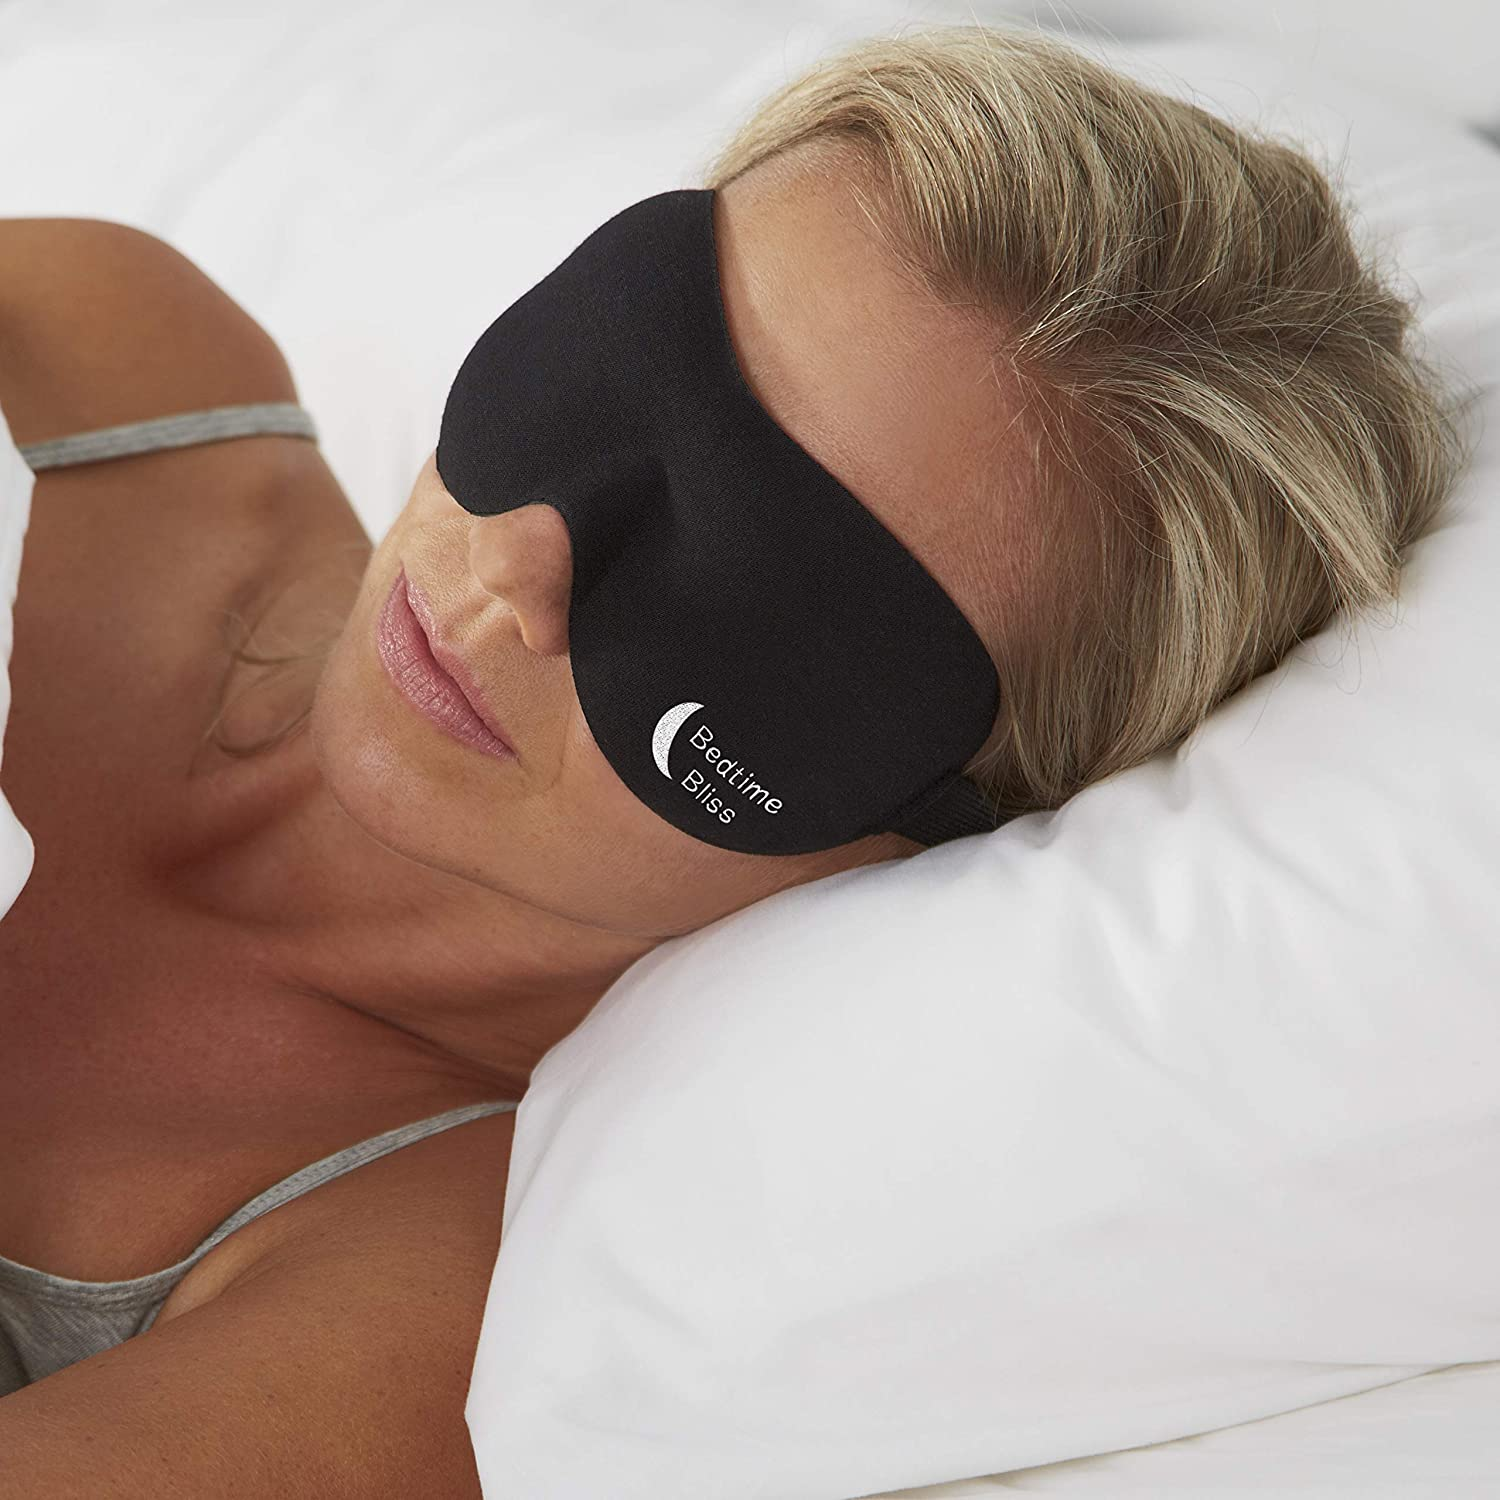 Bedtime Bliss Luxury Sleeping Eye Mask for Men & Women. Our Sleep Masks are Adjustable, Contoured & Comfortable for Full Blackout - Includes Carry Pouch and Ear Plugs -  Black : Beauty